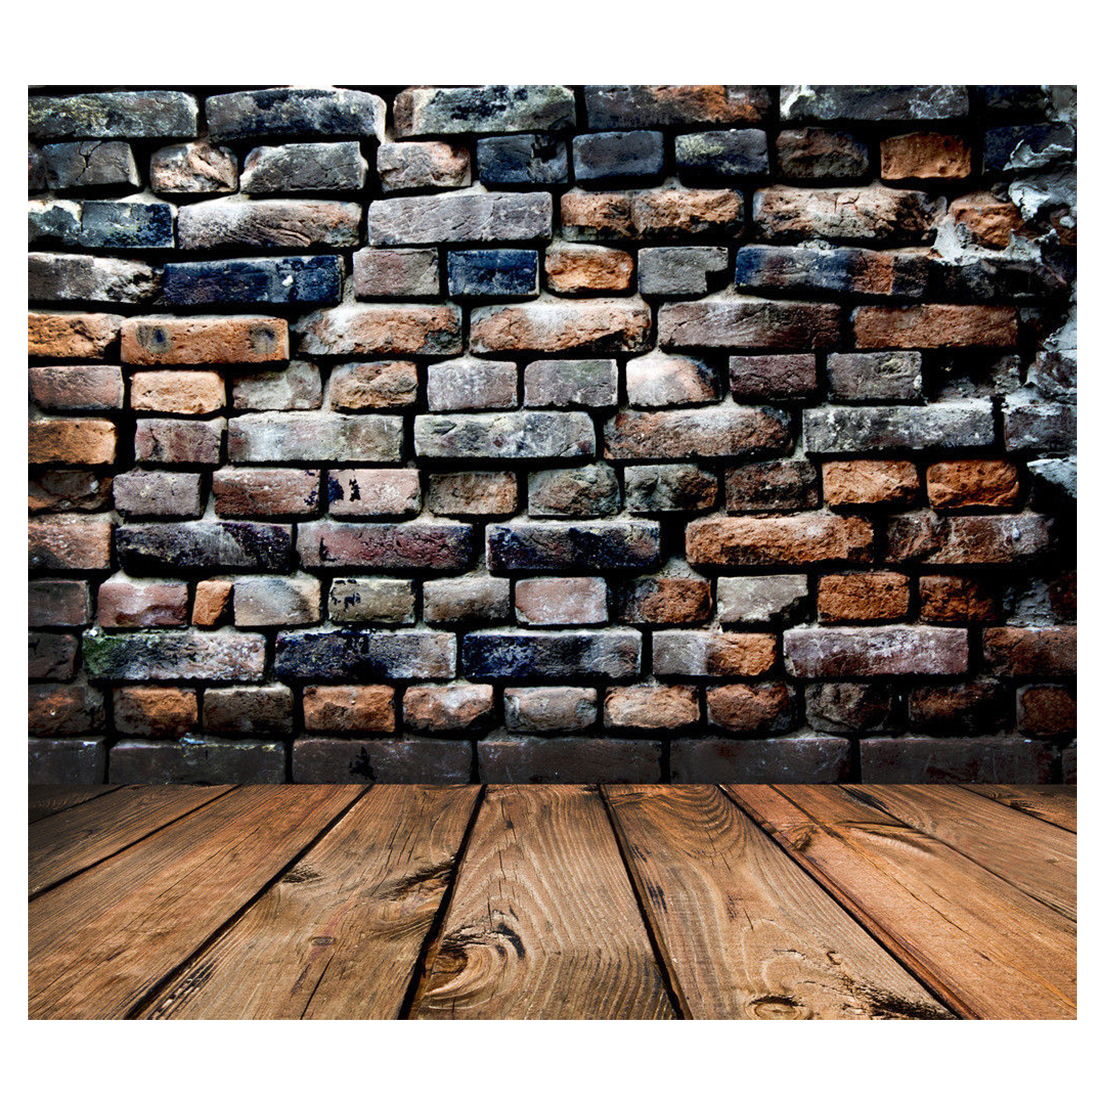 Retro Vinyl Photography Backdrop Brick Wall Wood Floor Background  5*7FT 10ft 20ft romantic wedding backdrop f 894 fabric background idea wood floor digital photography backdrop for picture taking